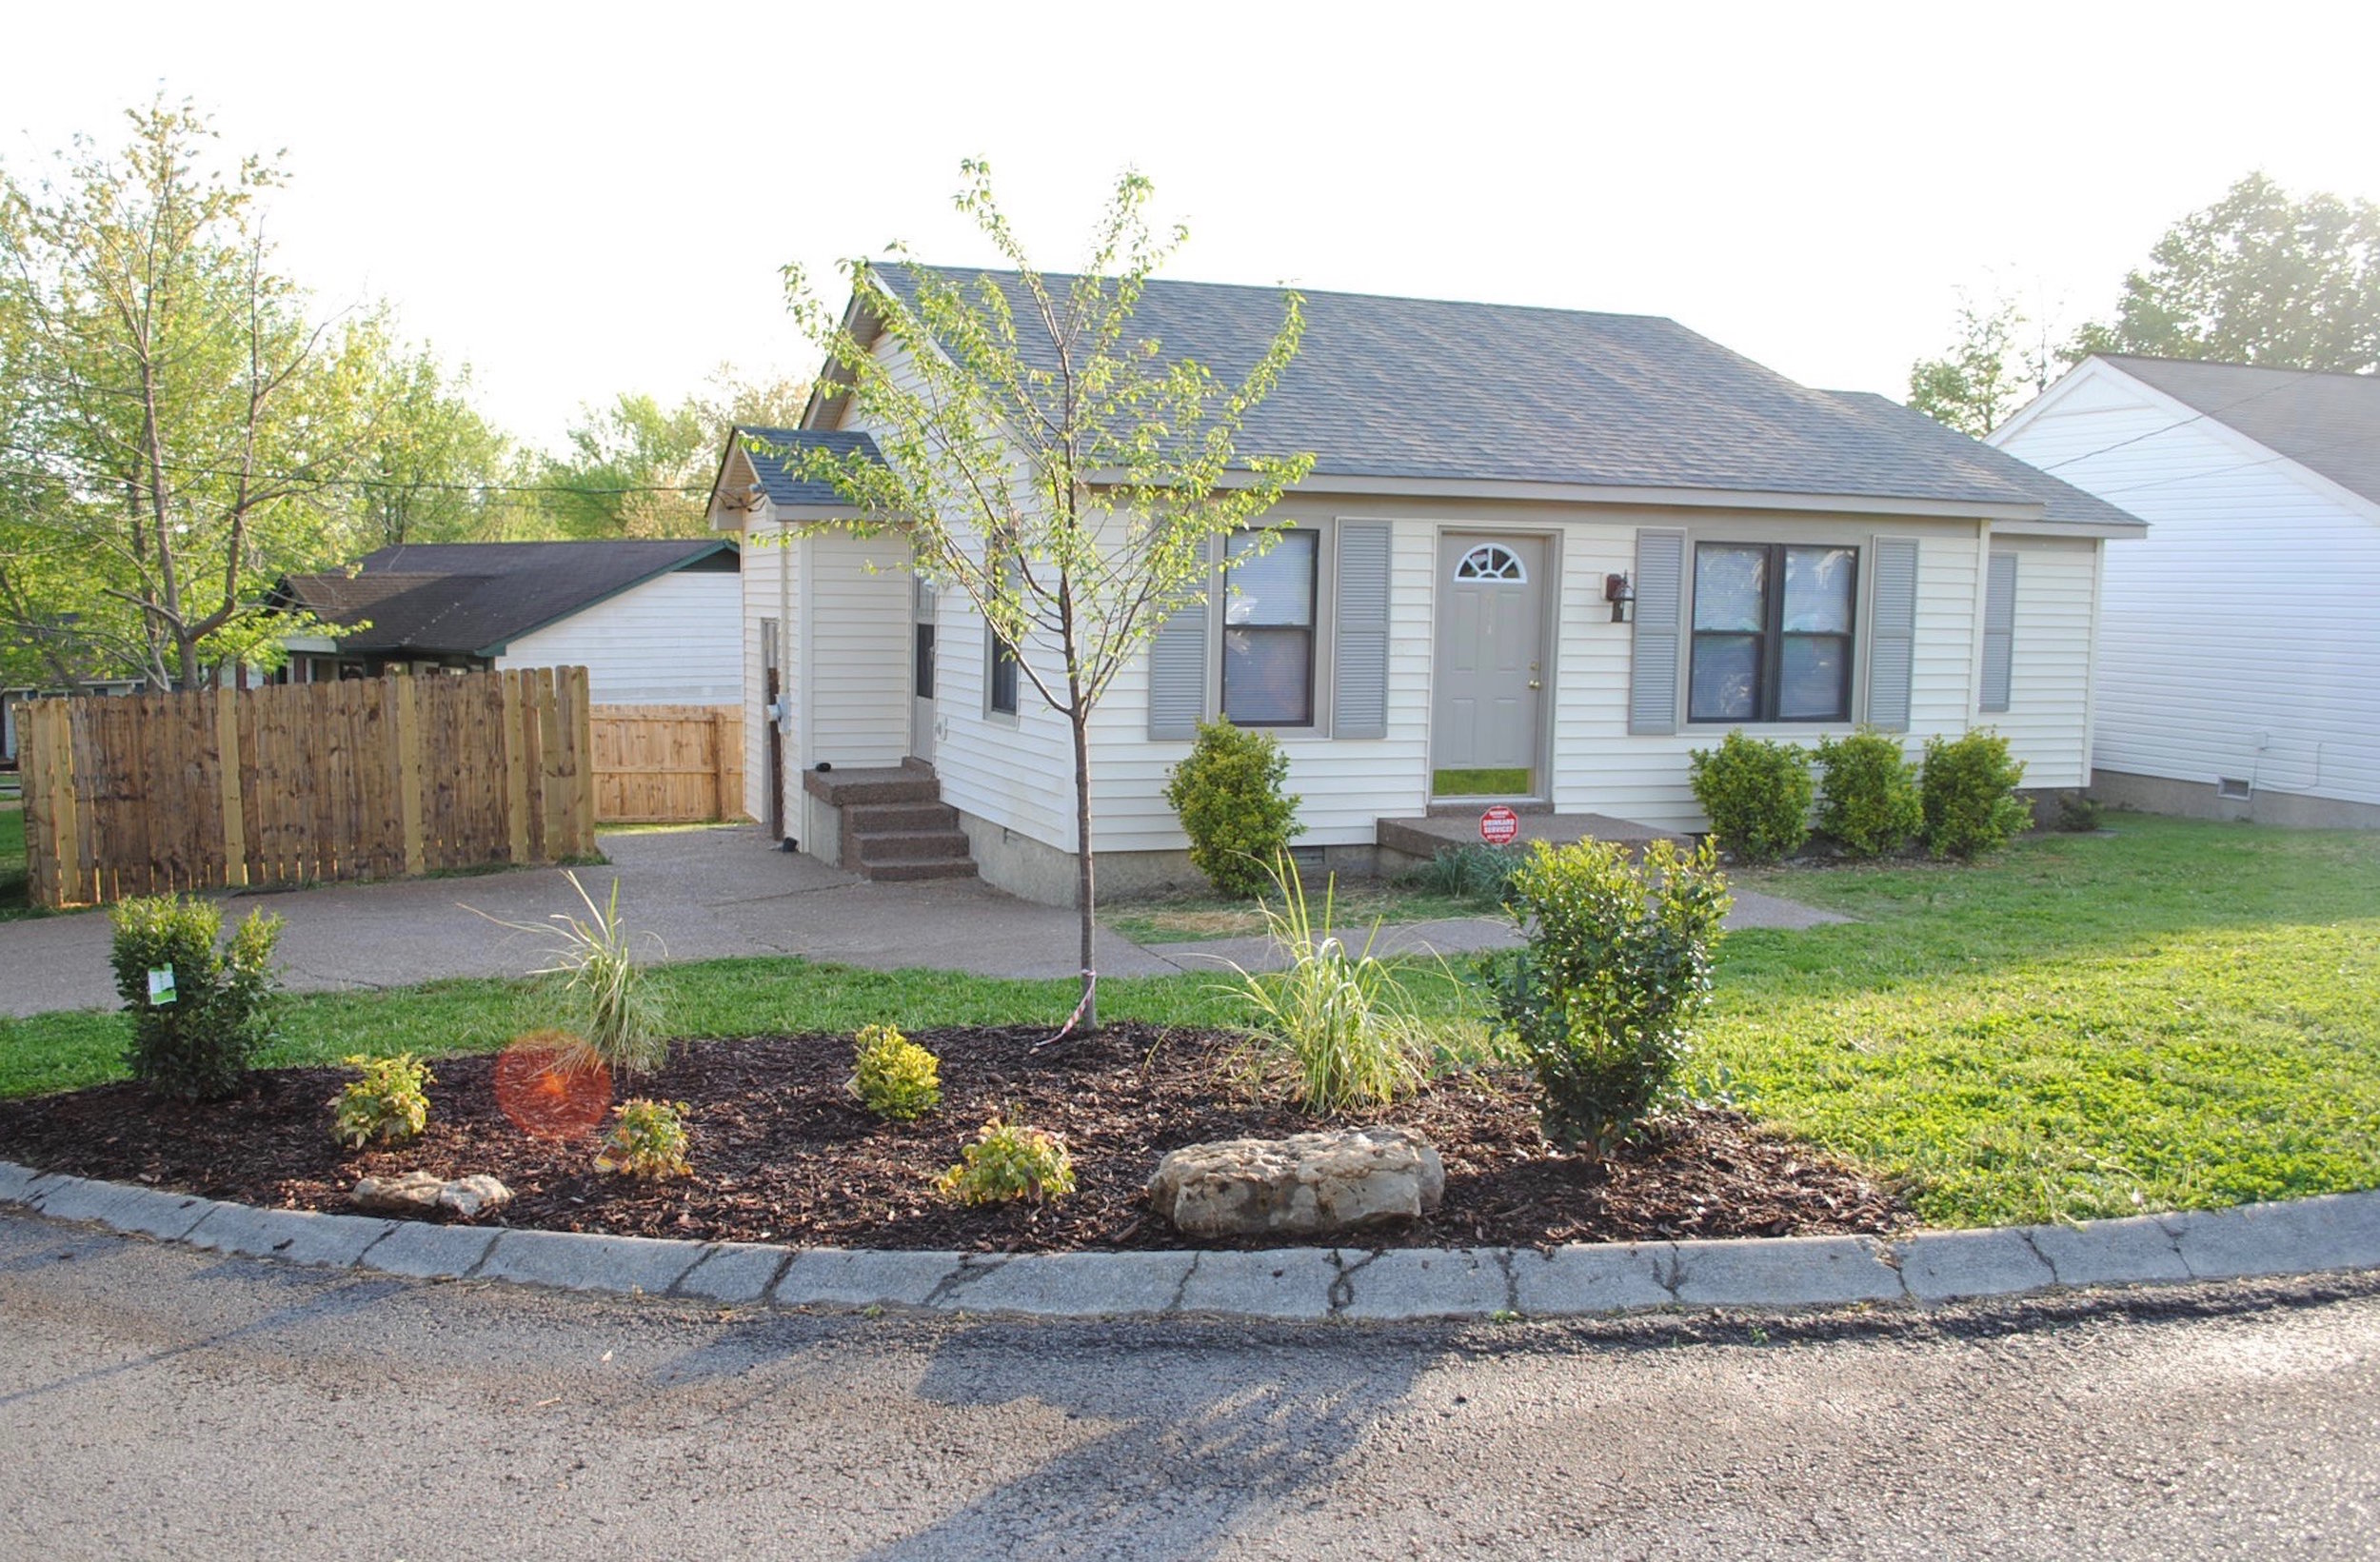 411 RENTED  MADISON: 411 Heritage Ln: Home: 3 Br 1.5 Ba